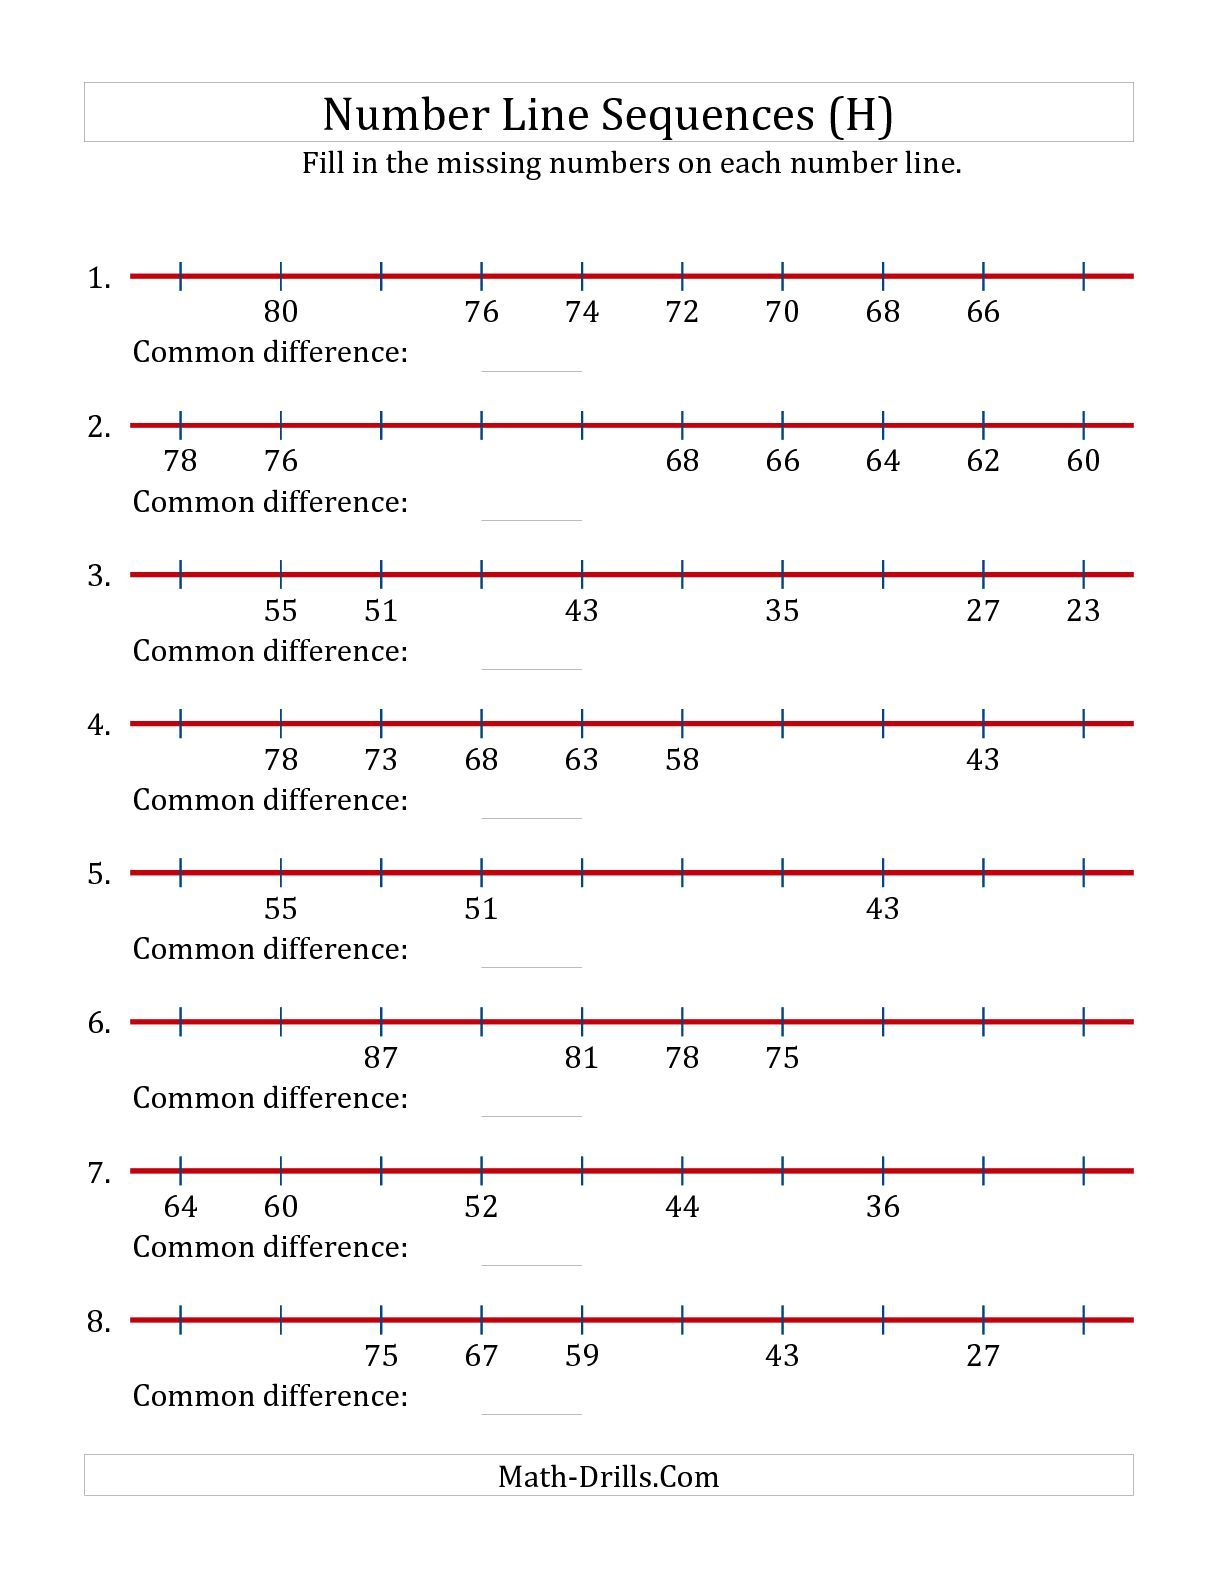 Decreasing number line sequences with missing numbers max